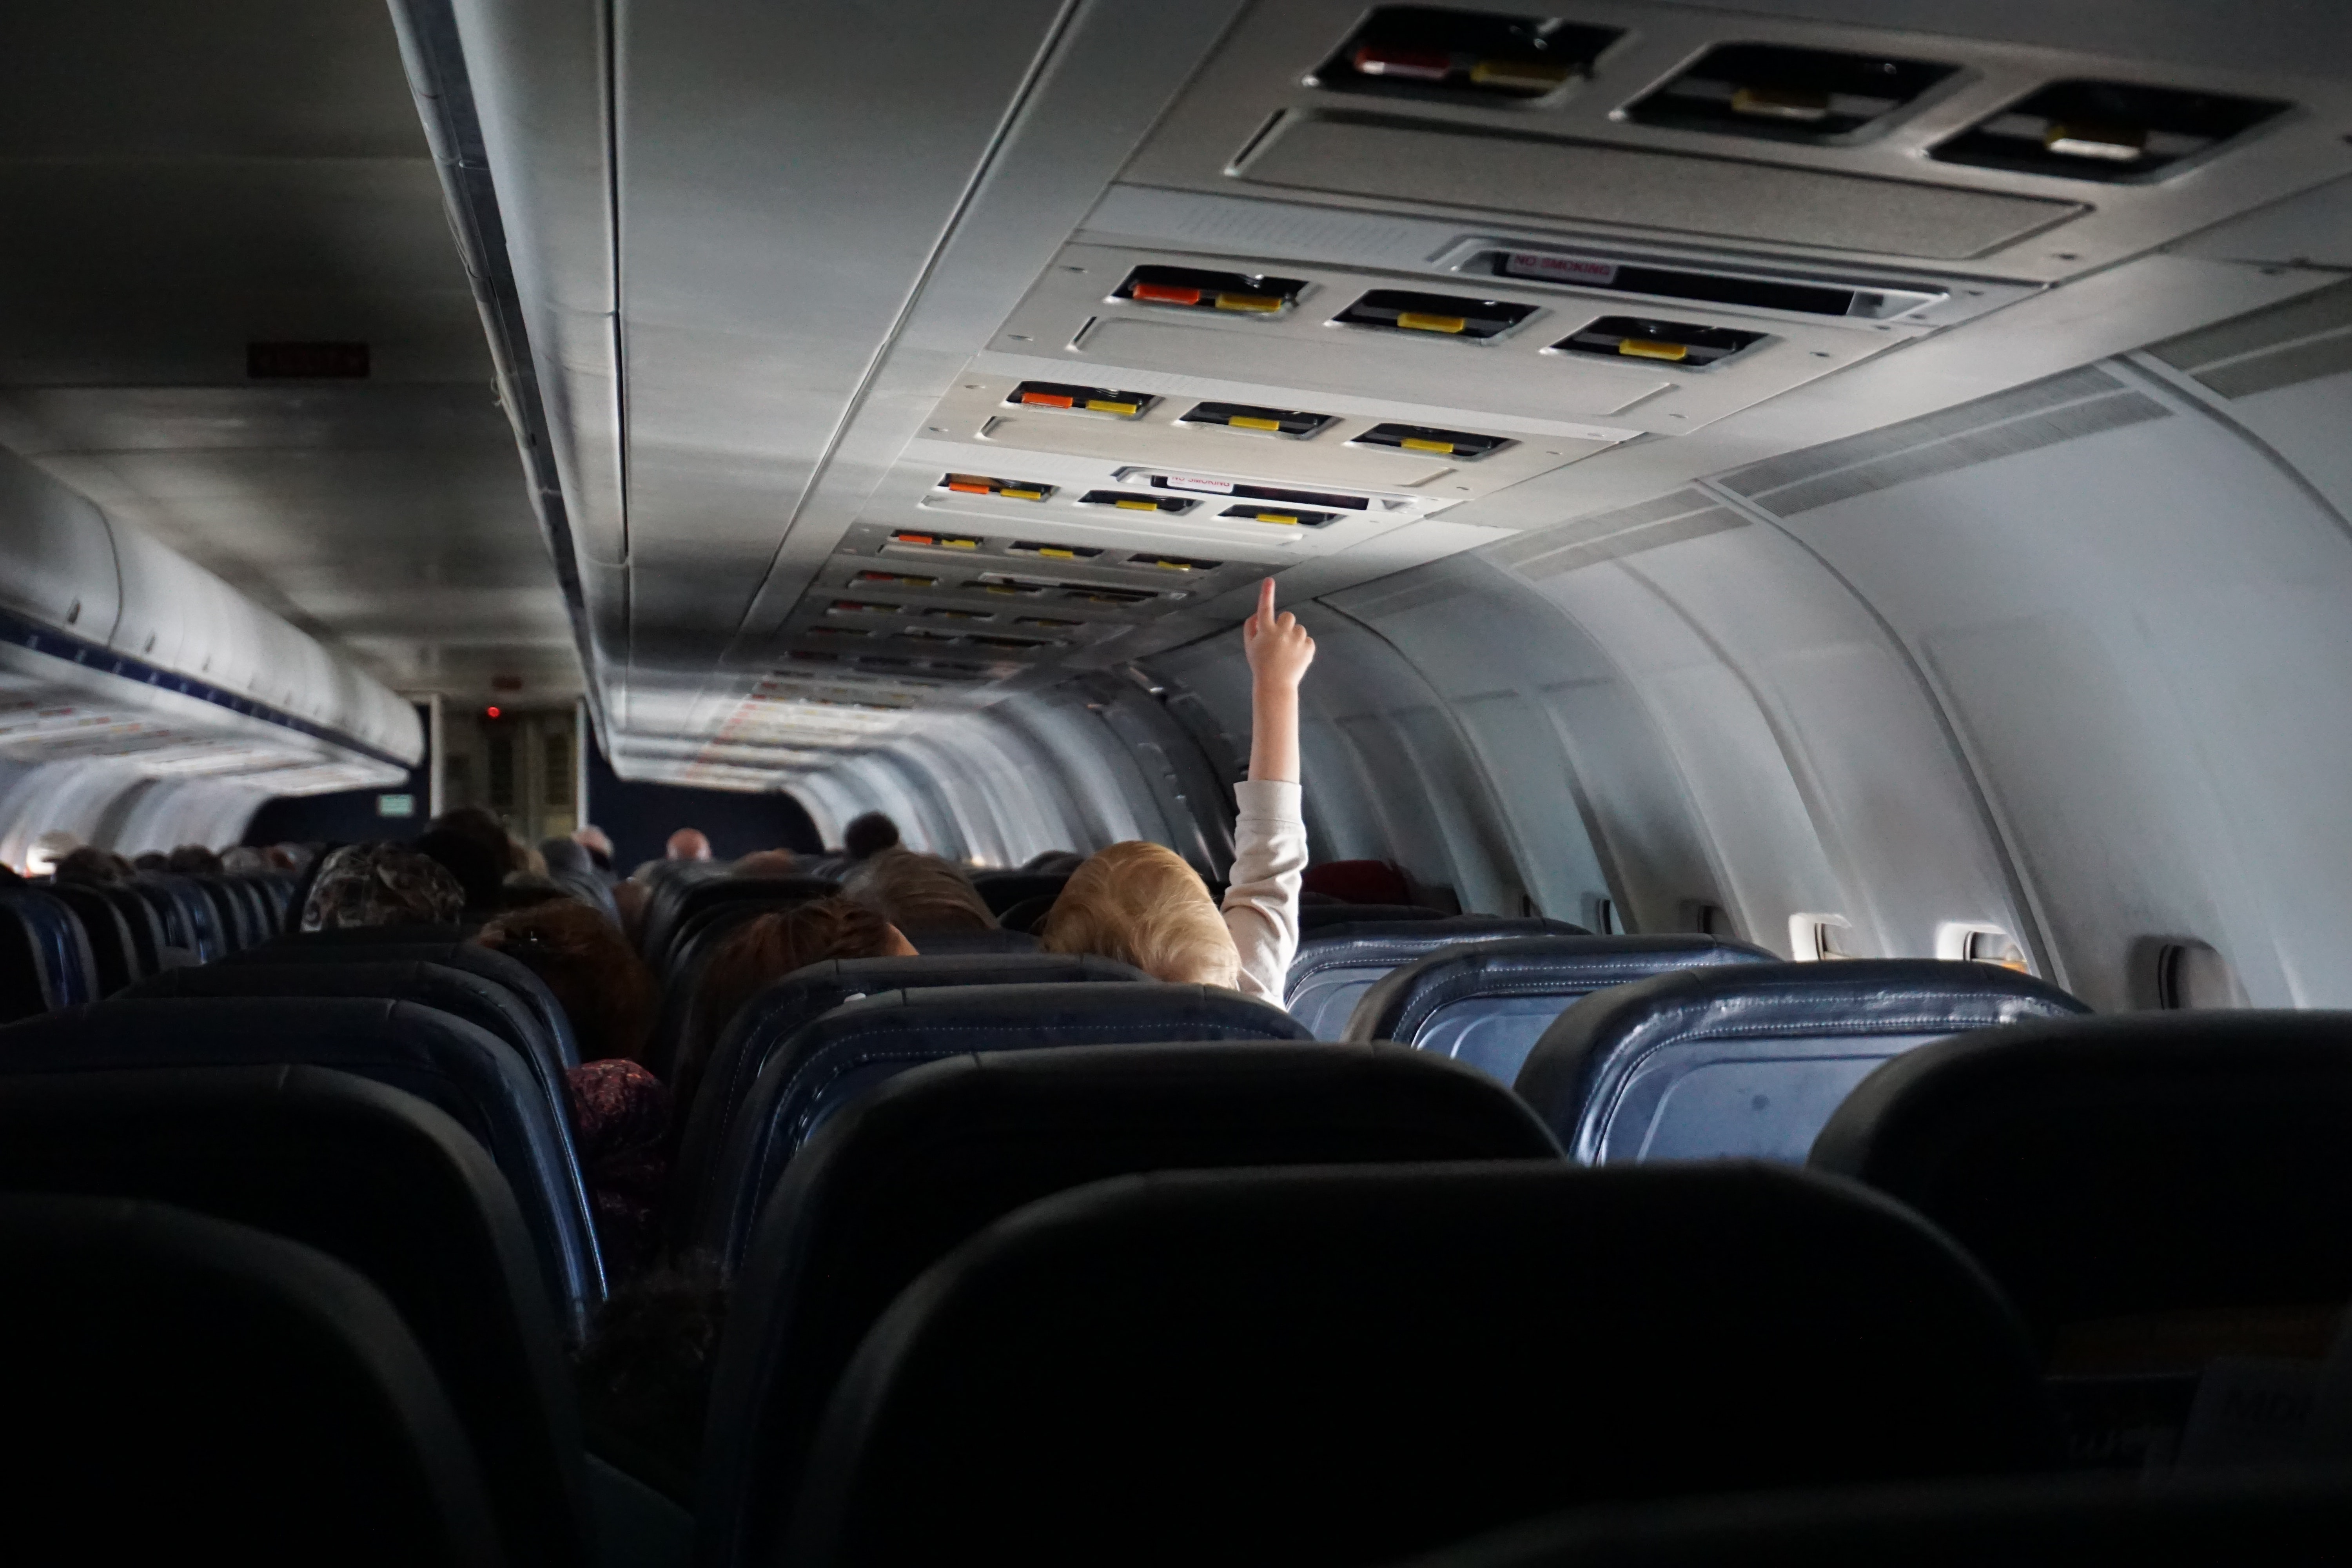 A child on a plane lifting their hand to adjust overhead controls above the seat